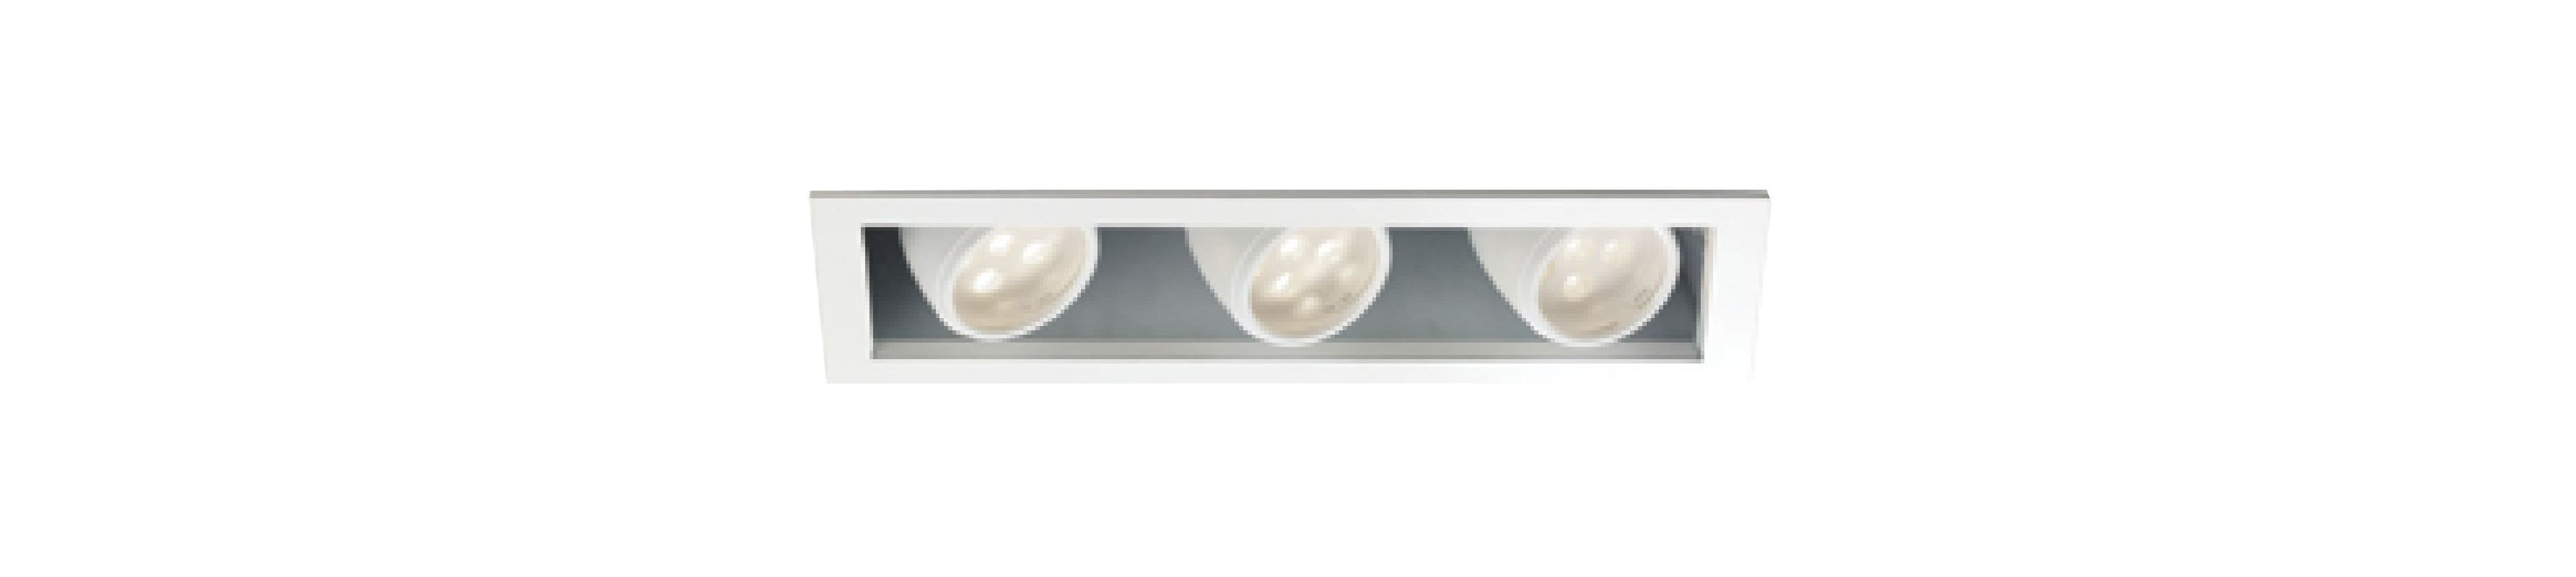 WAC Lighting MT-LED318S-CWHS Multiple Spot 4500K High Output LED